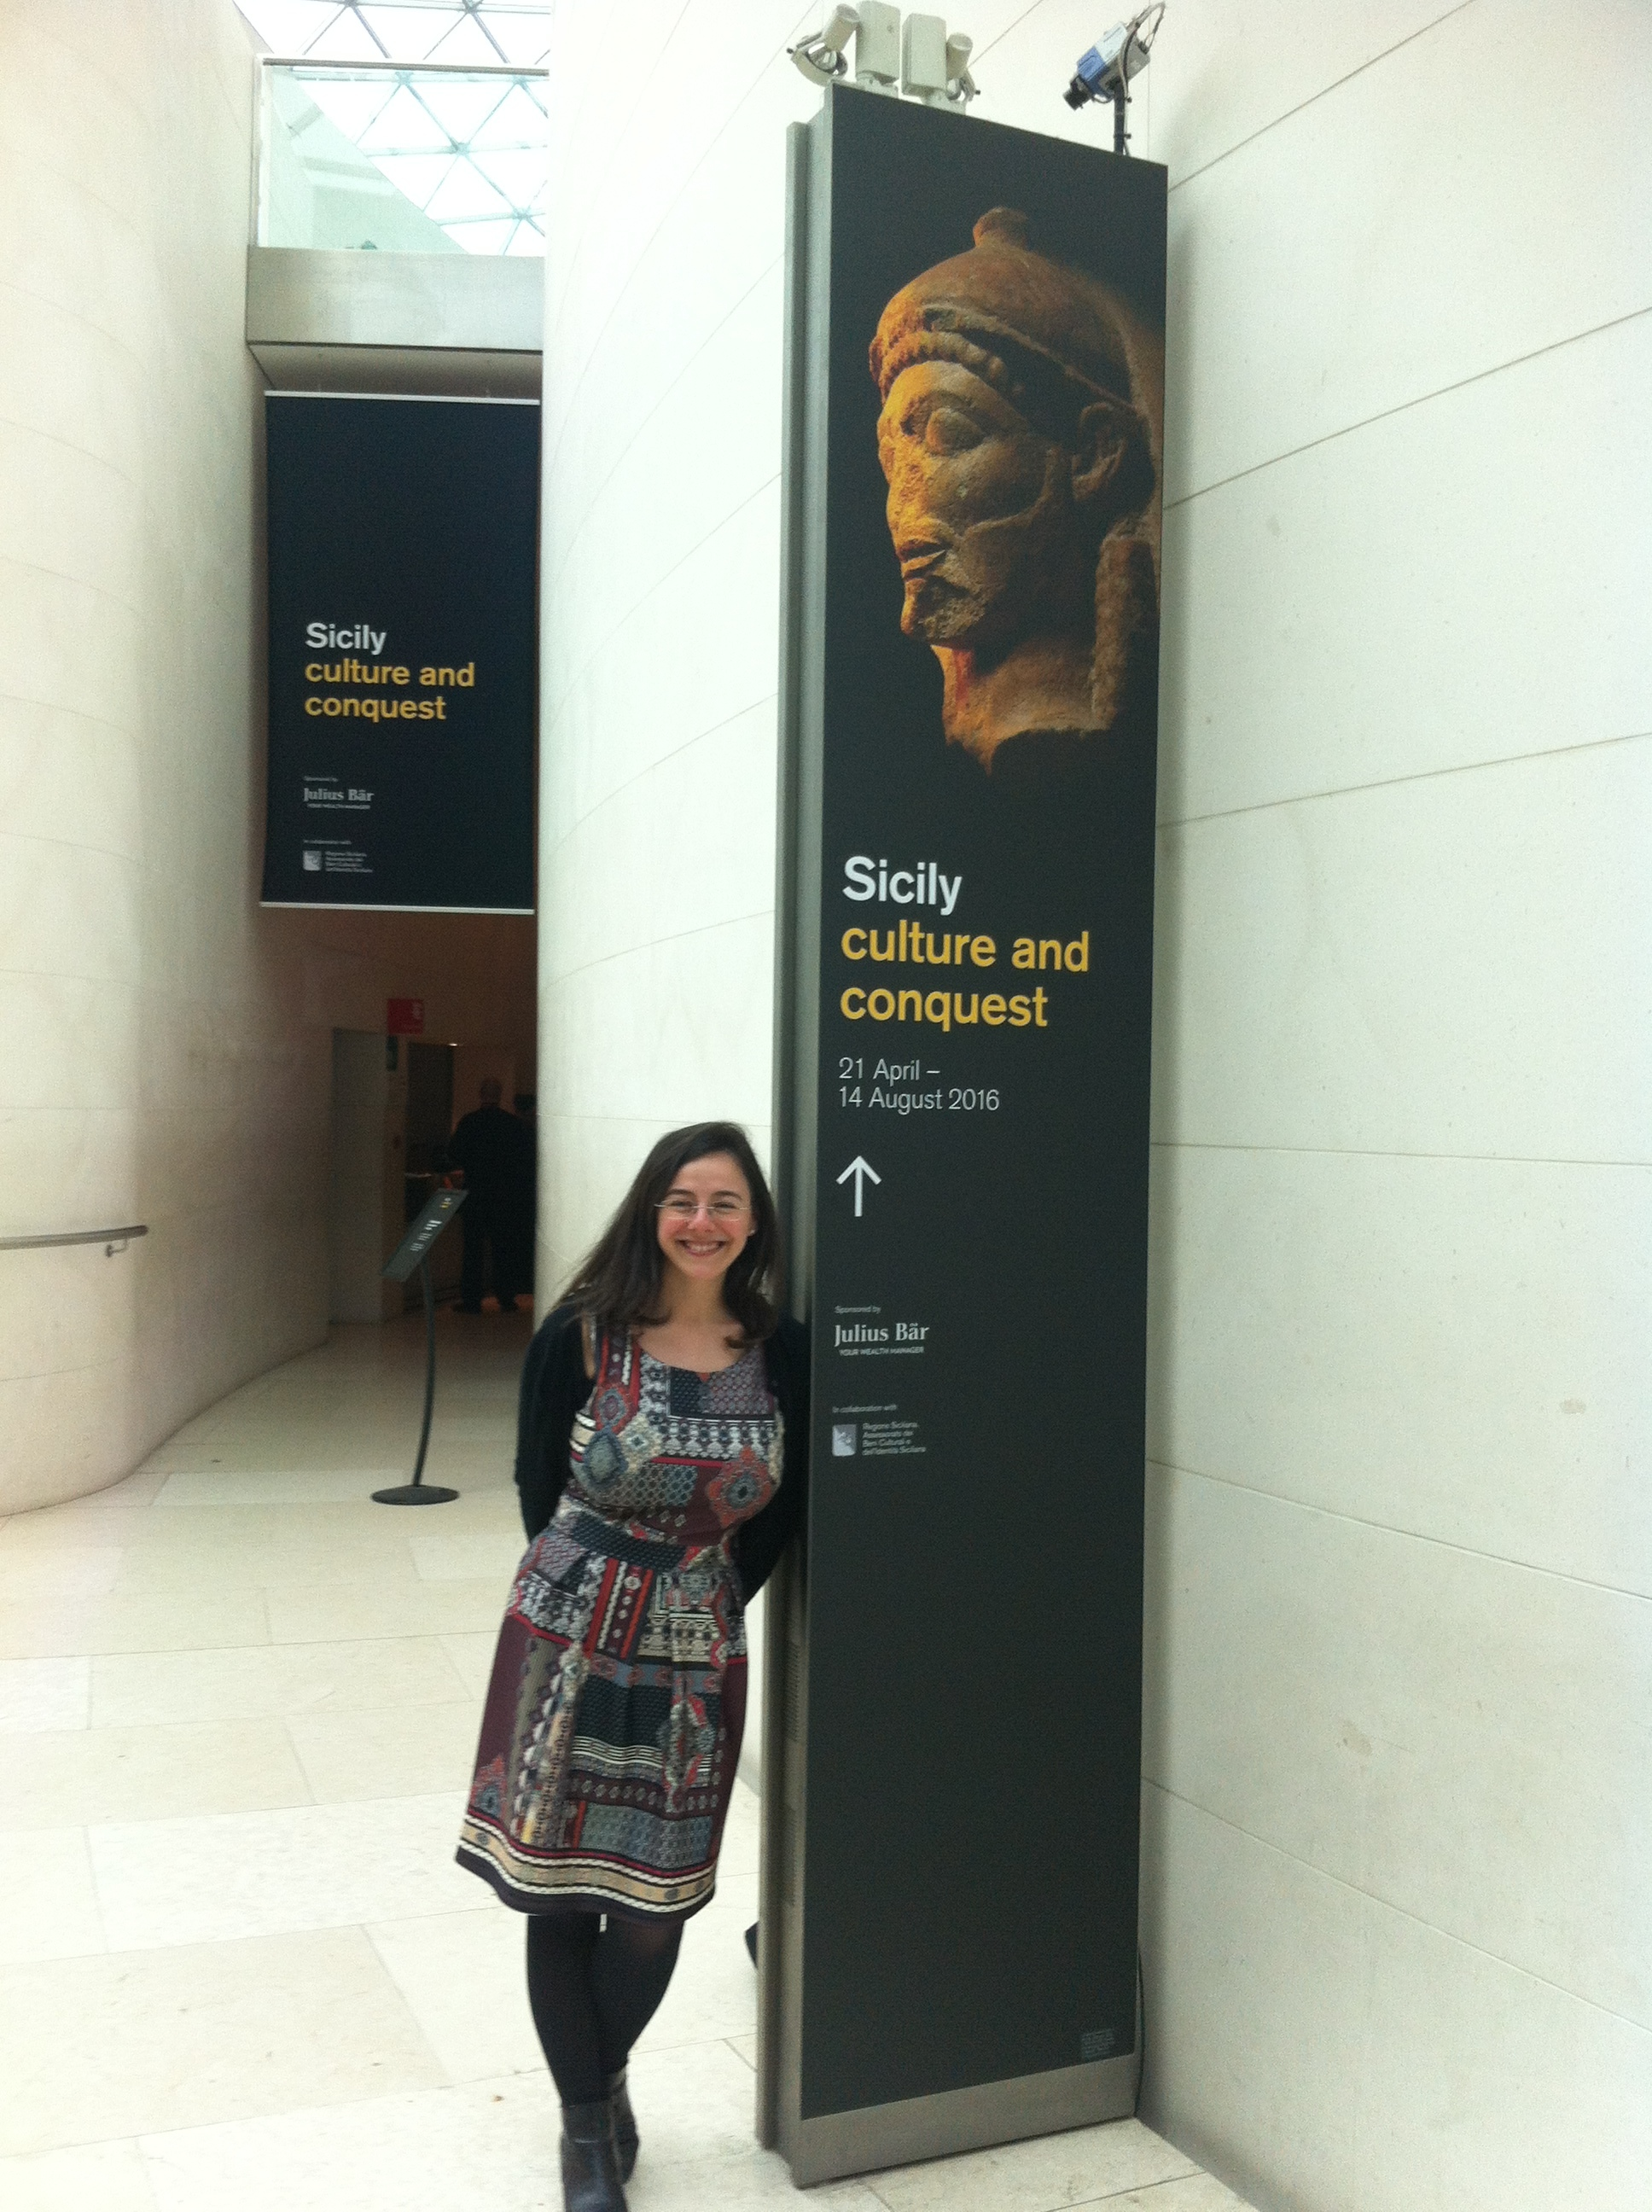 Me visiting the SicilyExhibition at the British Museum in London. Photo credits Geoff Andrews